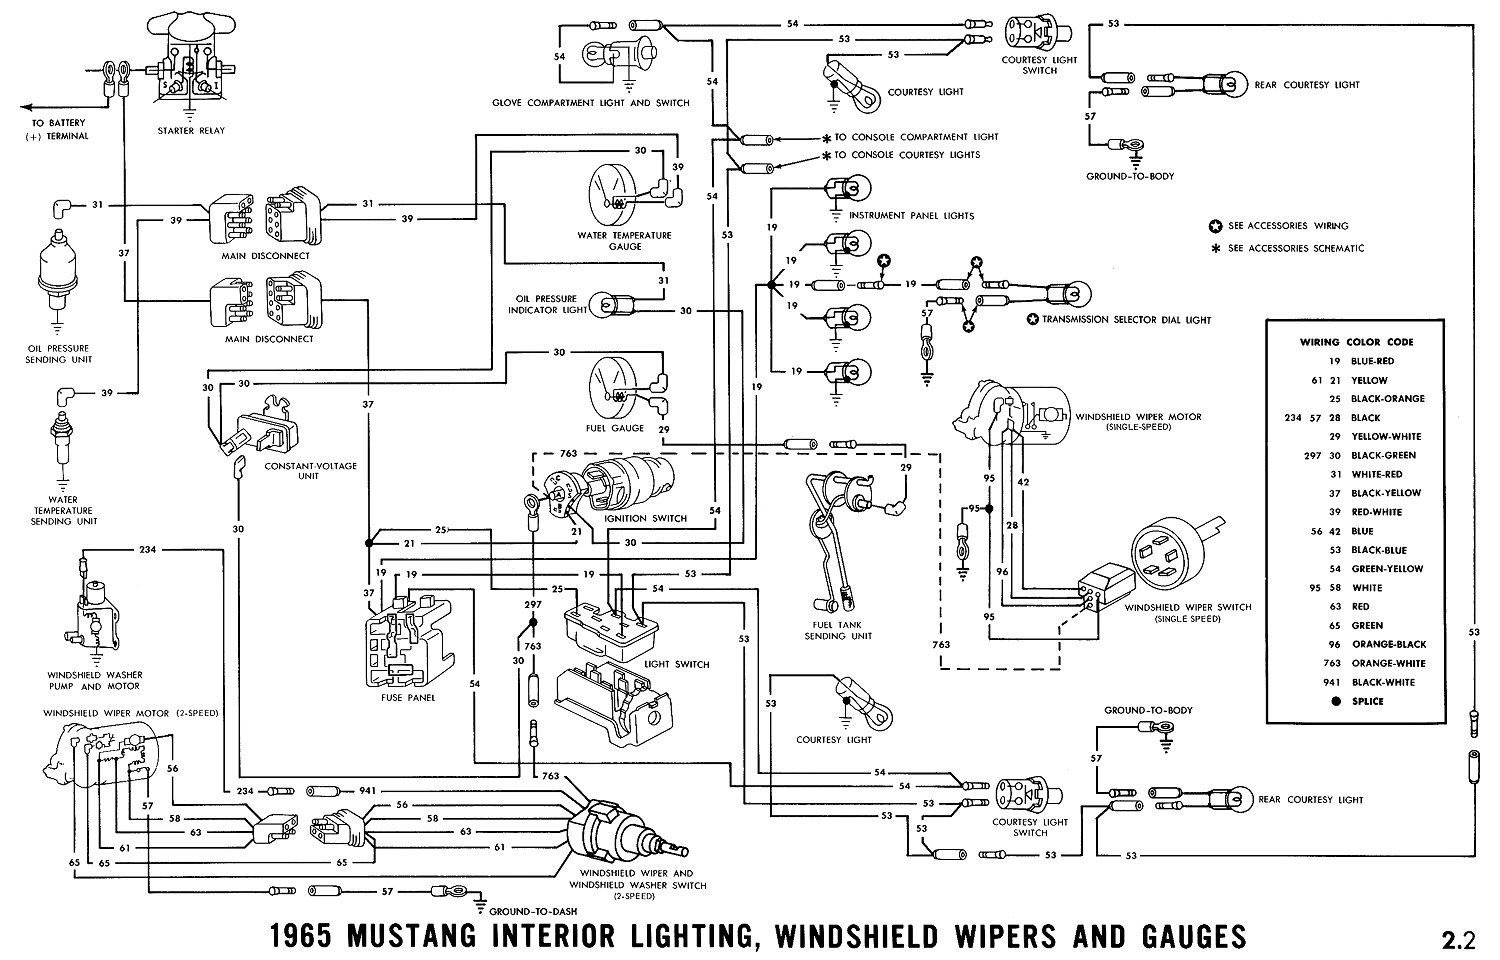 1965 mustang wiring diagrams average joe restoration rh averagejoerestoration com 1965 Mustang Wiring Harness Diagram 1968 ford falcon wiring diagram